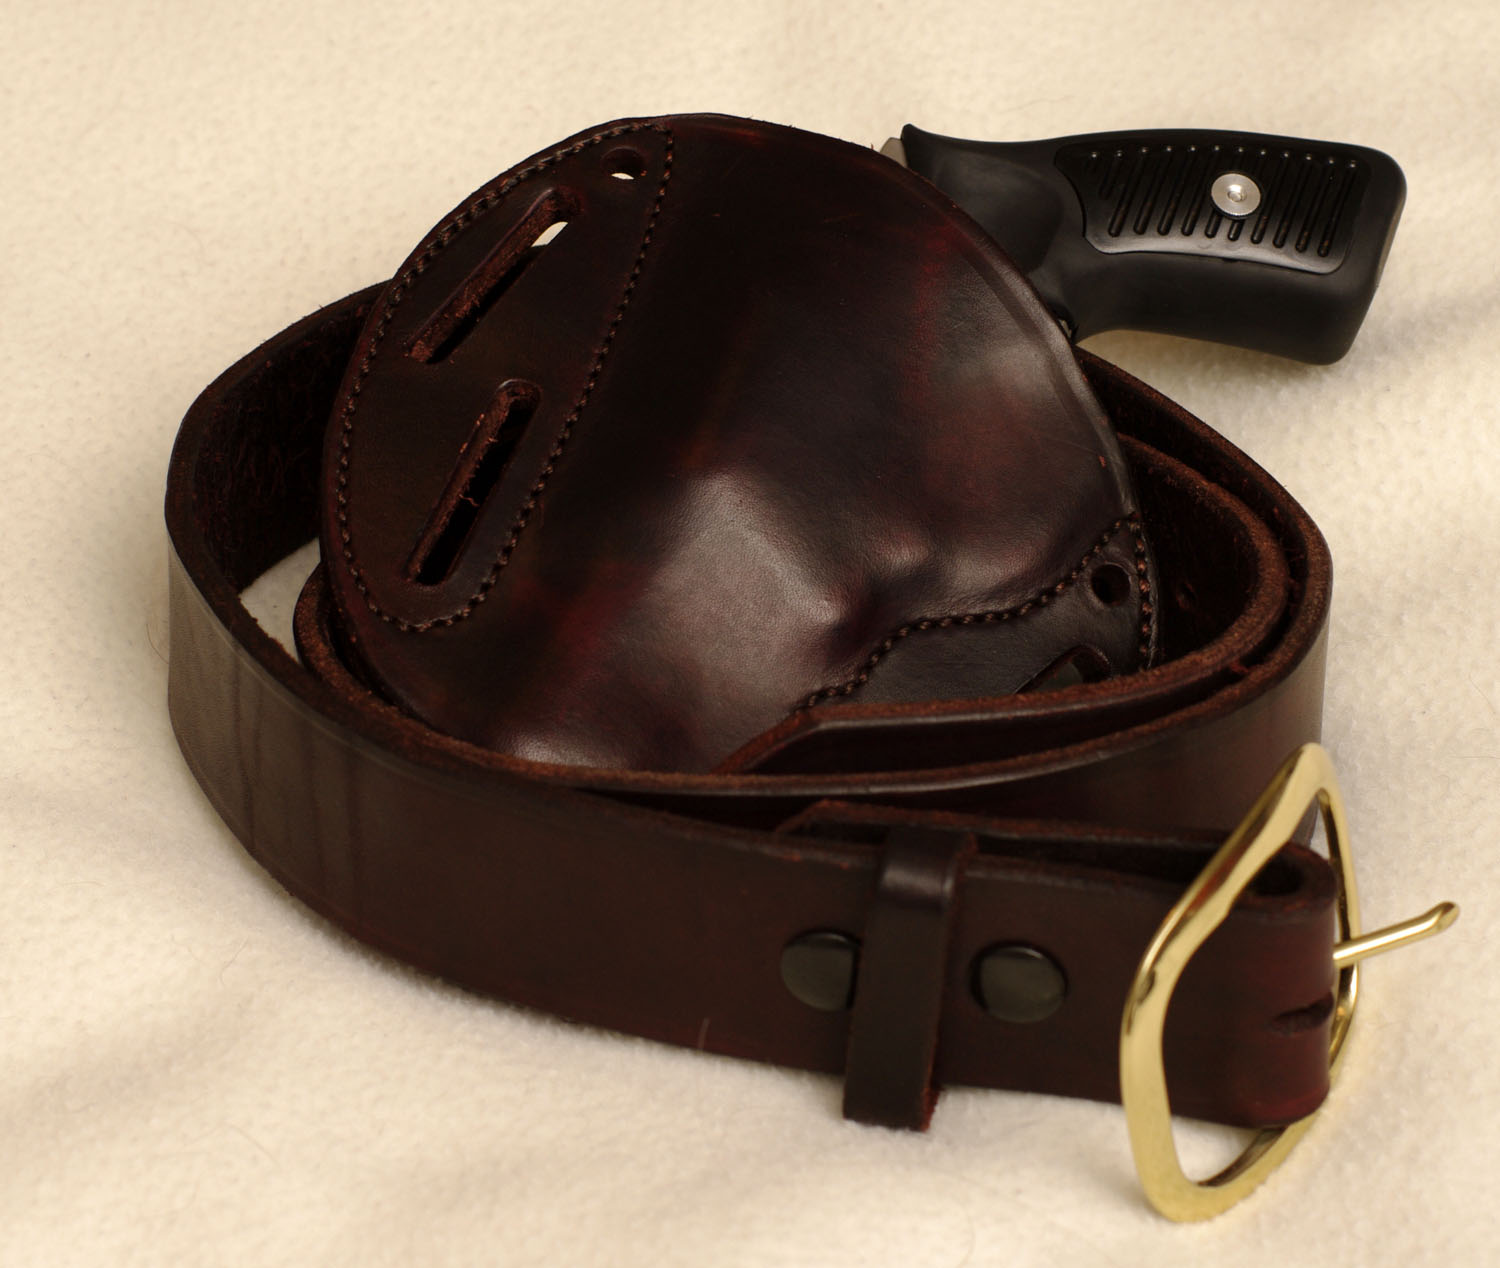 FS simplyrugged silver dollar pancake holster sp101, belt and ammo pouch: Alabama-_igp0412.jpg